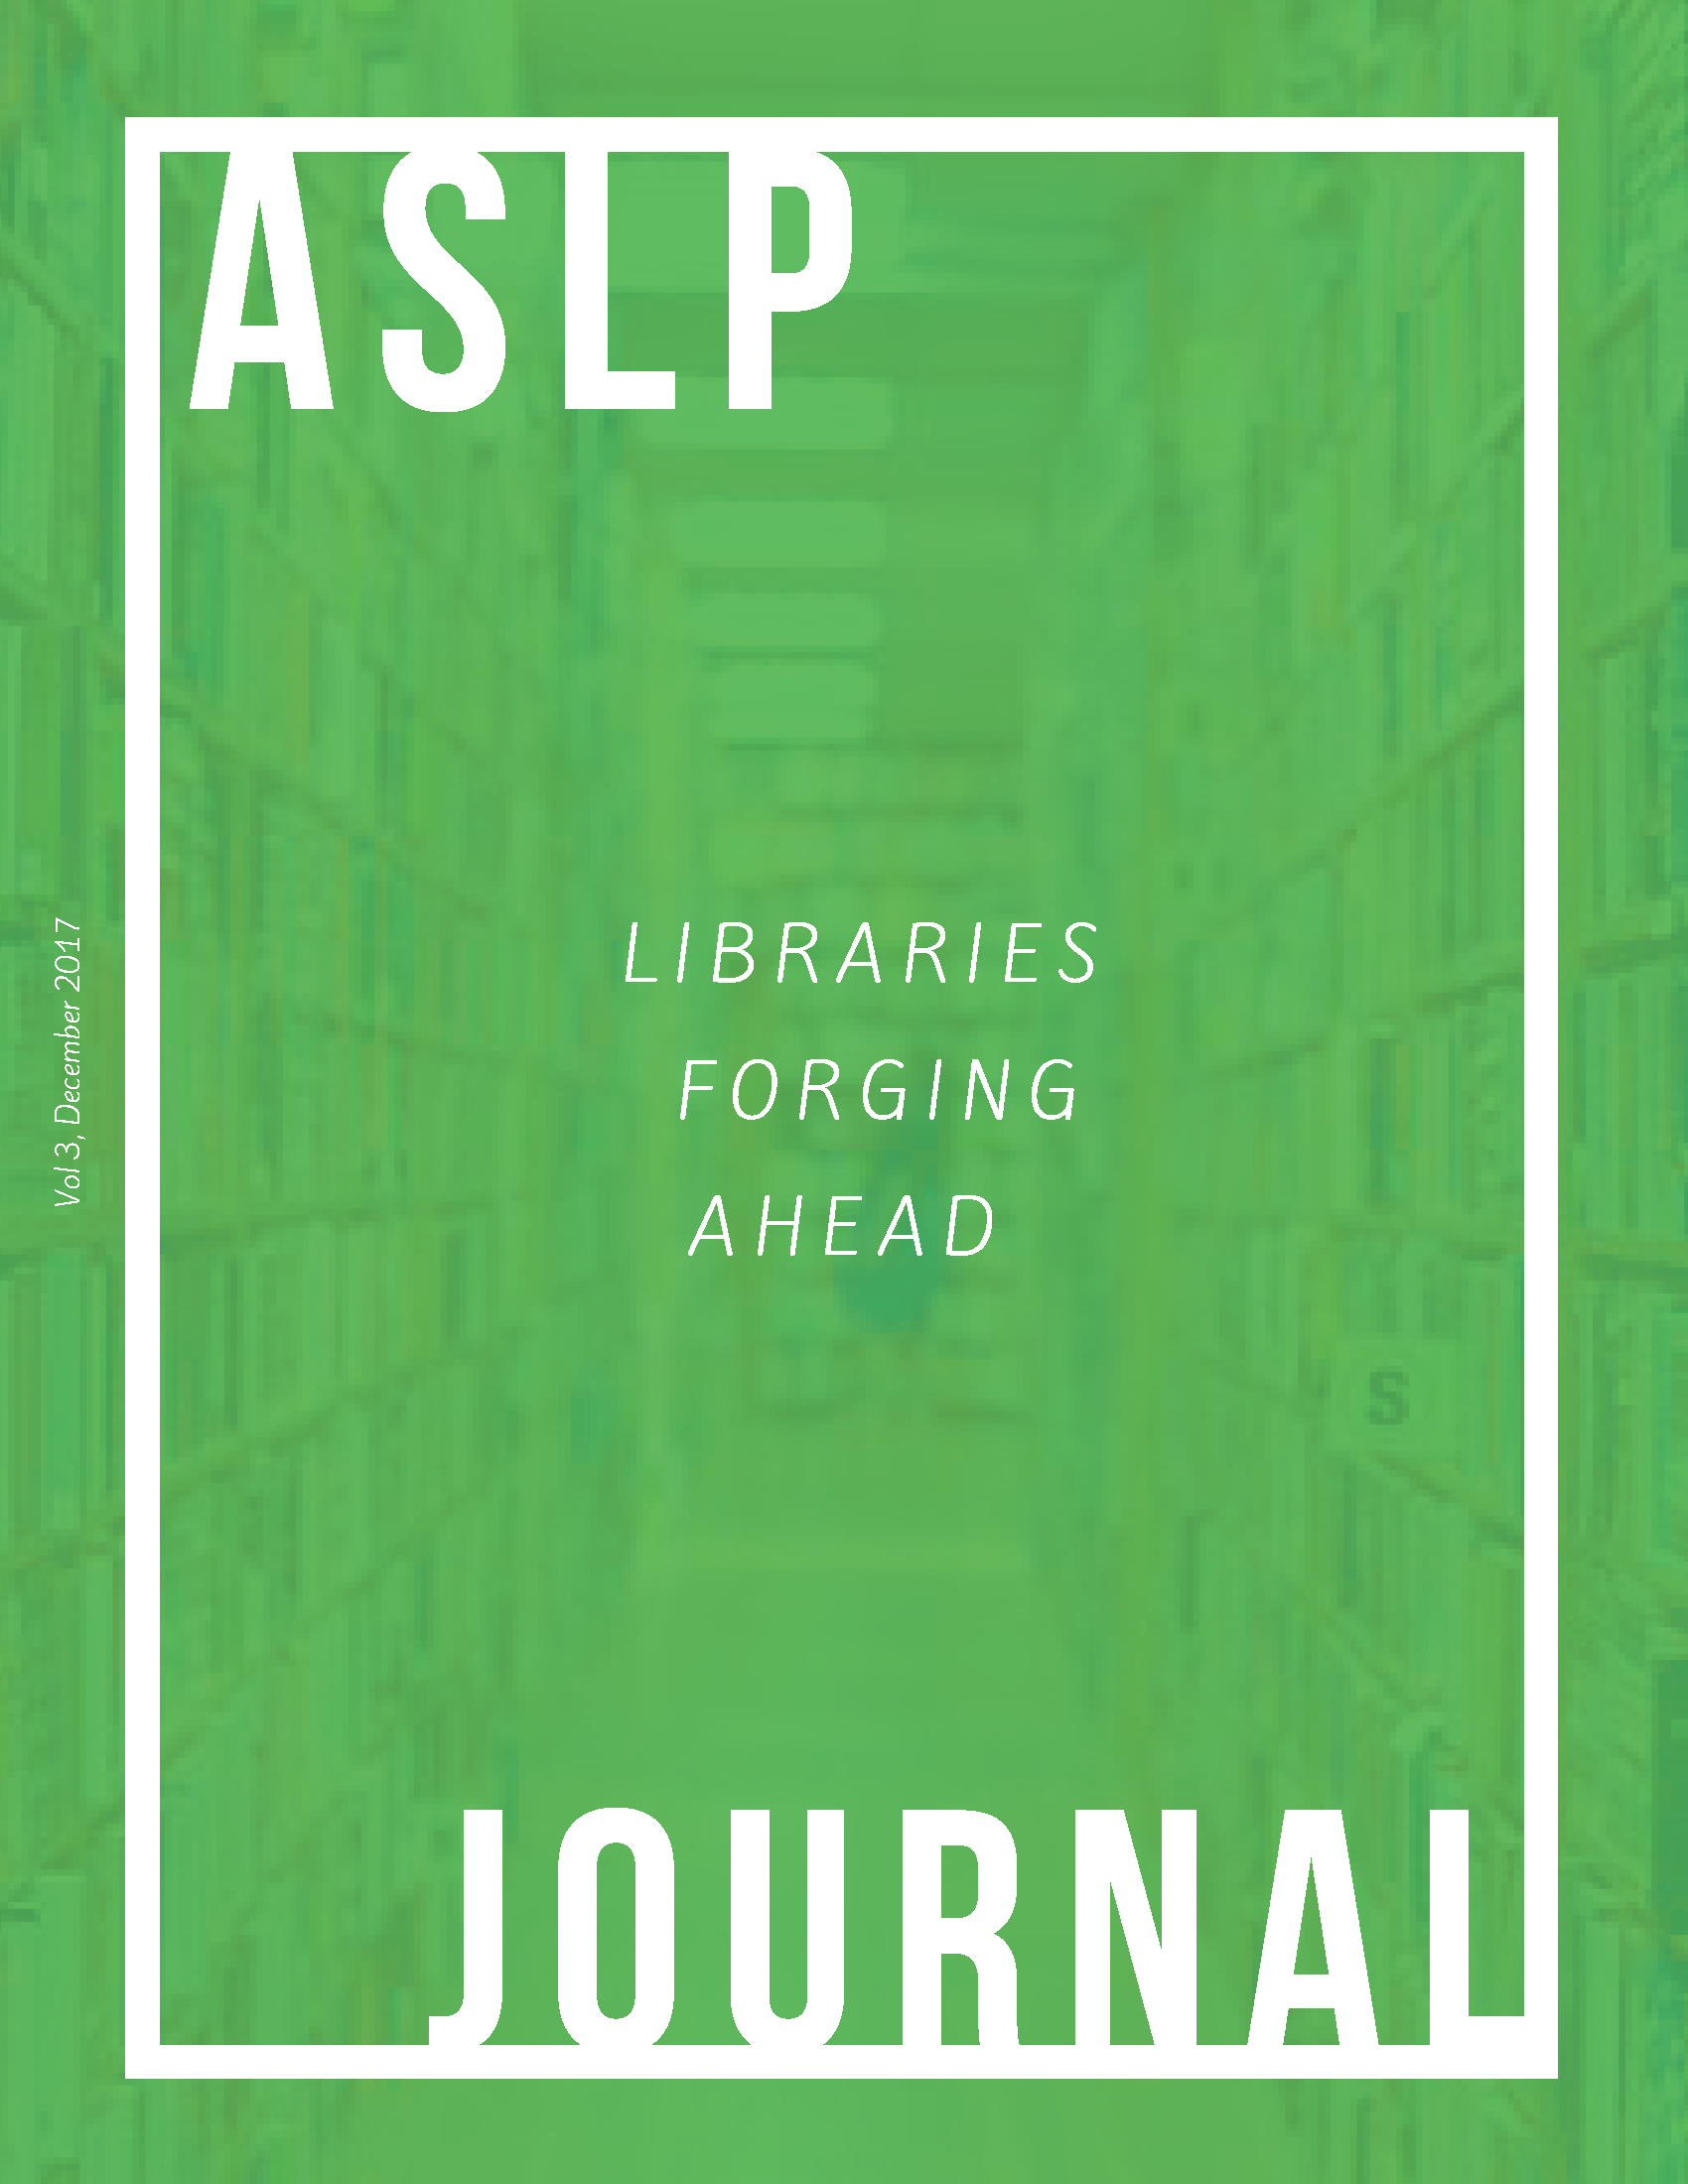 ASLP-Journal-Vol-3-December-2017_frontpage.png